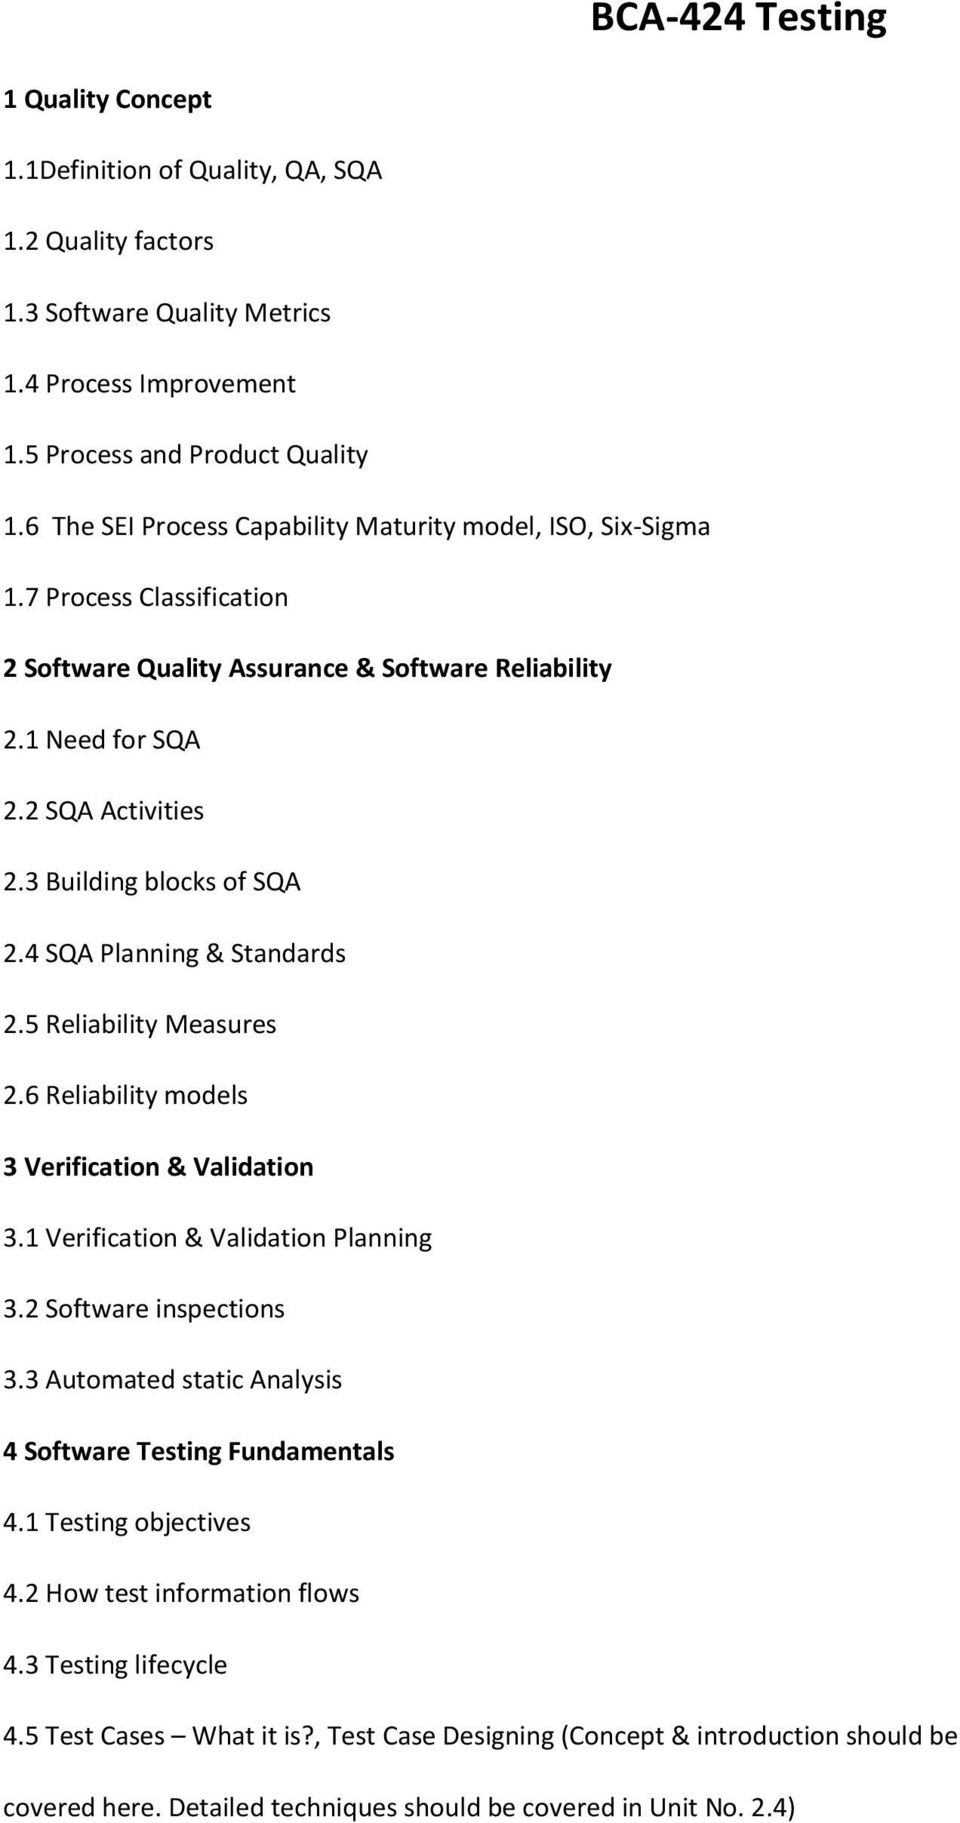 3 Building blocks of SQA 2.4 SQA Planning & Standards 2.5 Reliability Measures 2.6 Reliability models 3 Verification & Validation 3.1 Verification & Validation Planning 3.2 Software inspections 3.